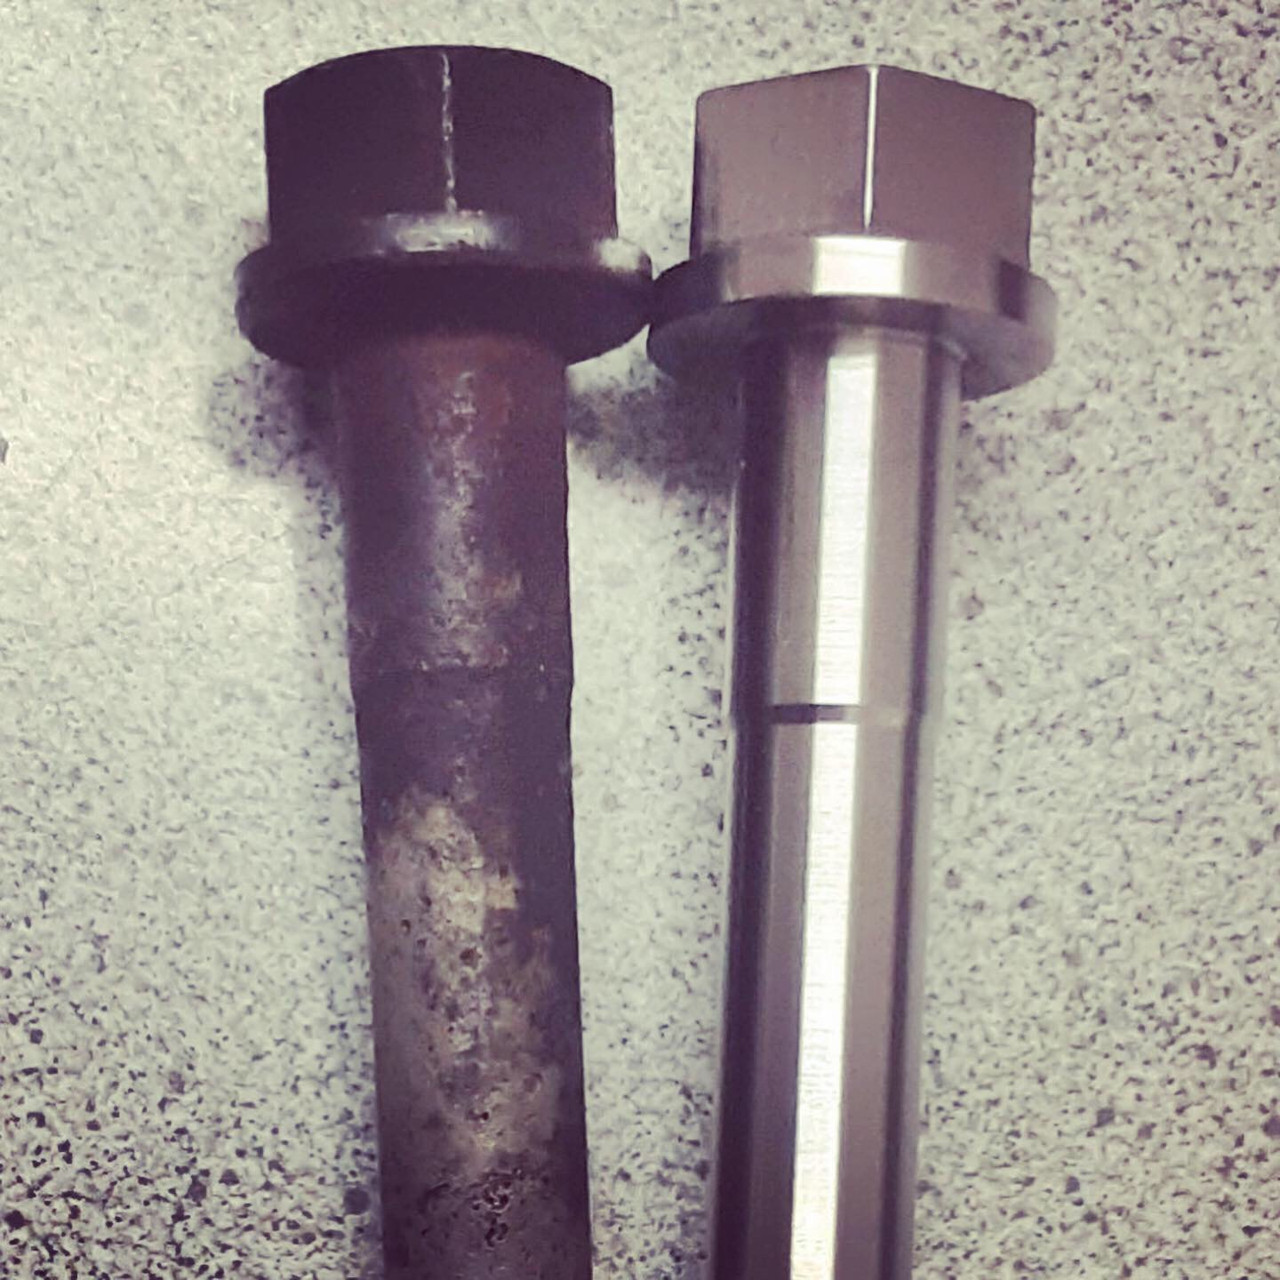 3FE Head Bolt- Front (HBF-3) compared to an old 3FE bolt